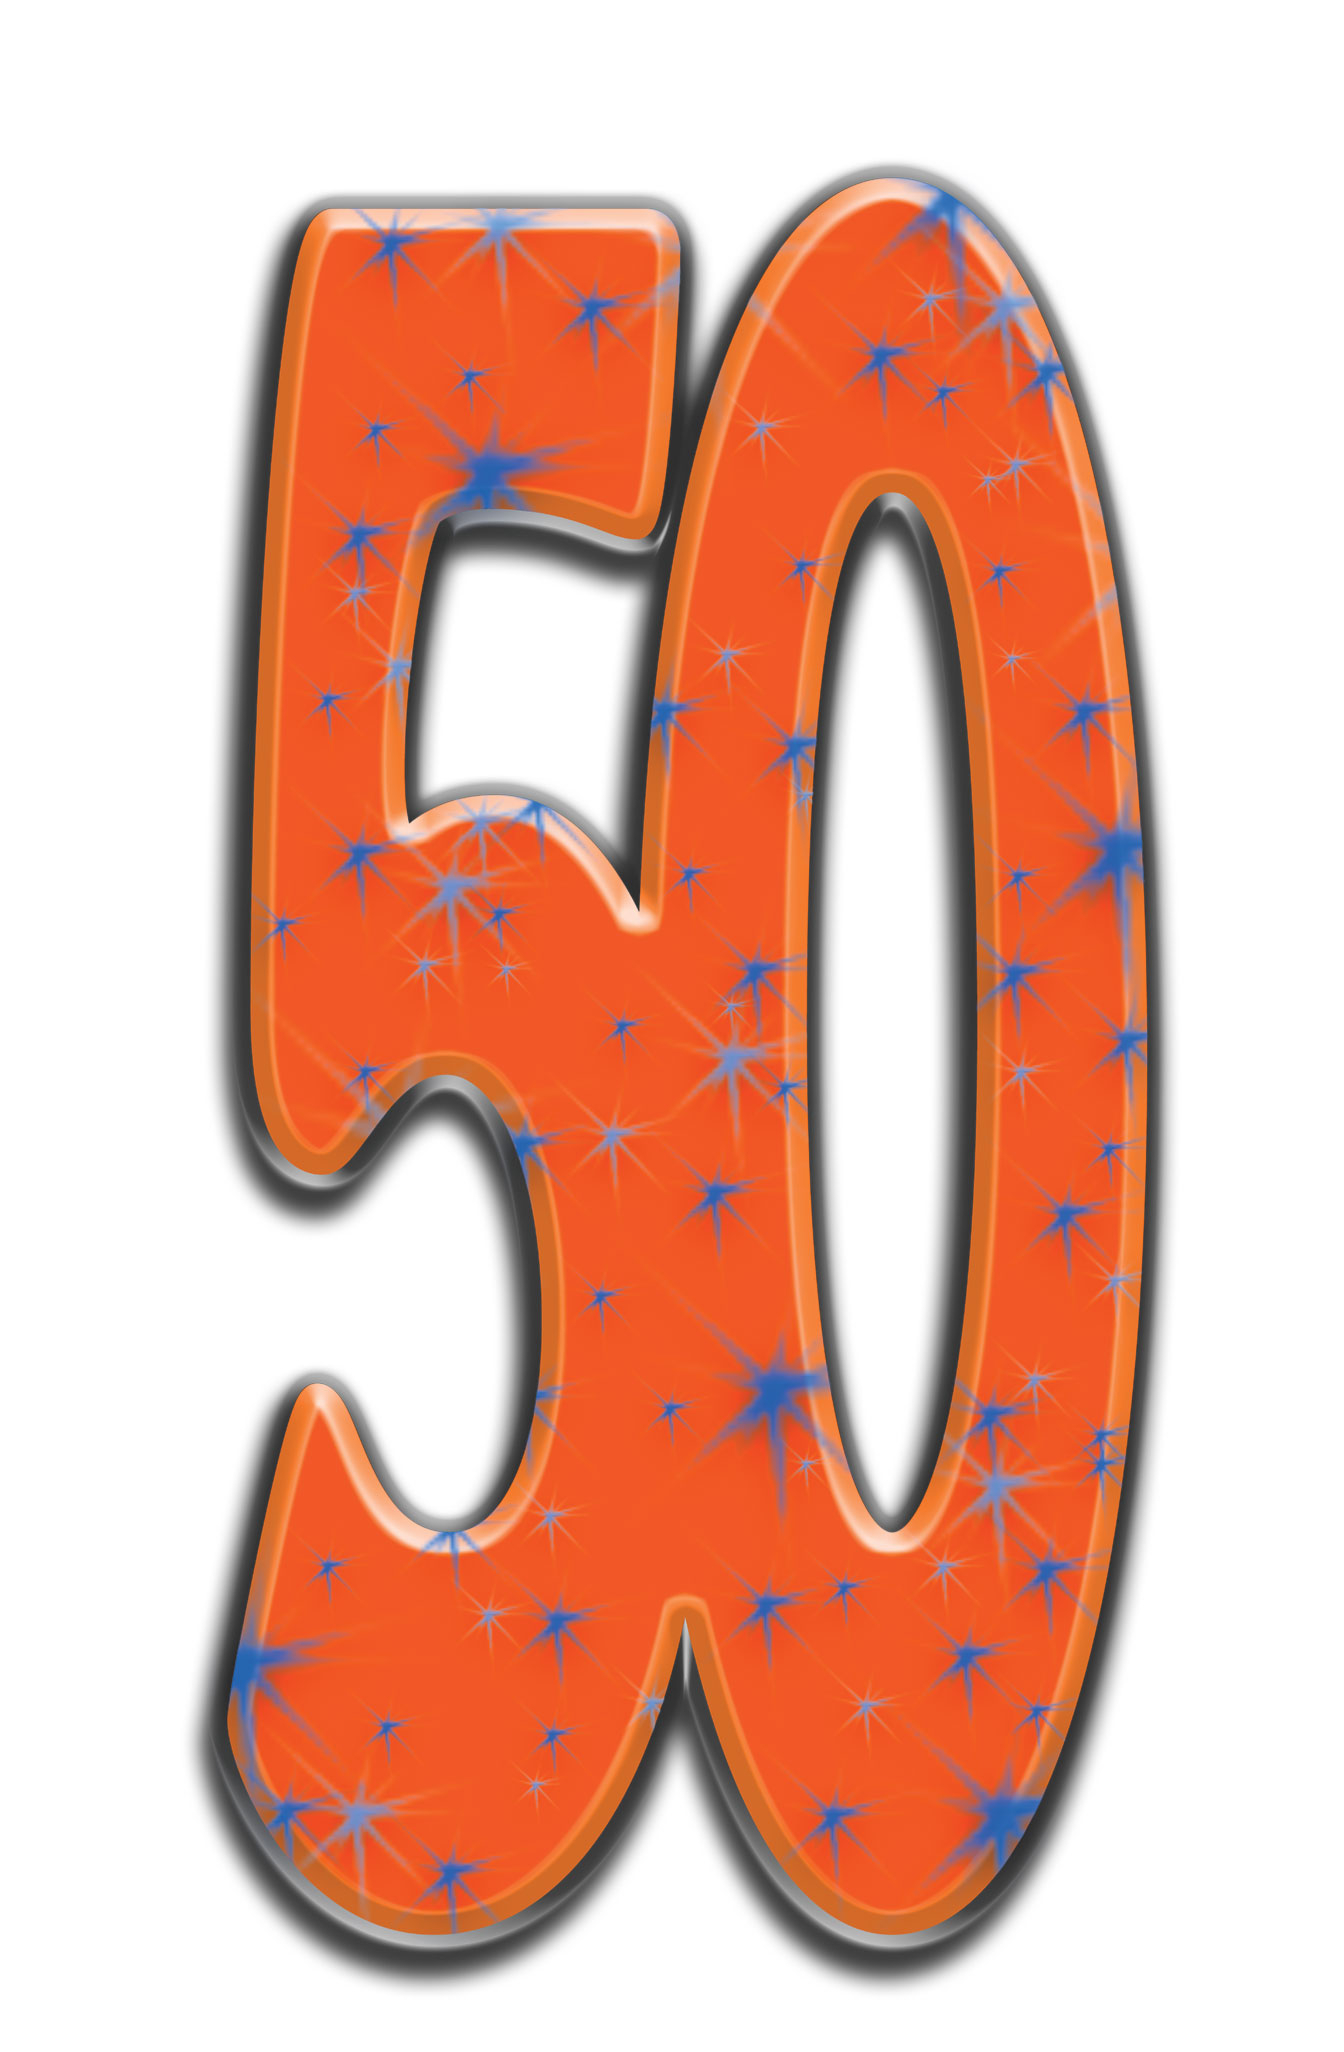 Number 50 clipart jpg transparent library Free Number 50 Cliparts, Download Free Clip Art, Free Clip Art on ... jpg transparent library